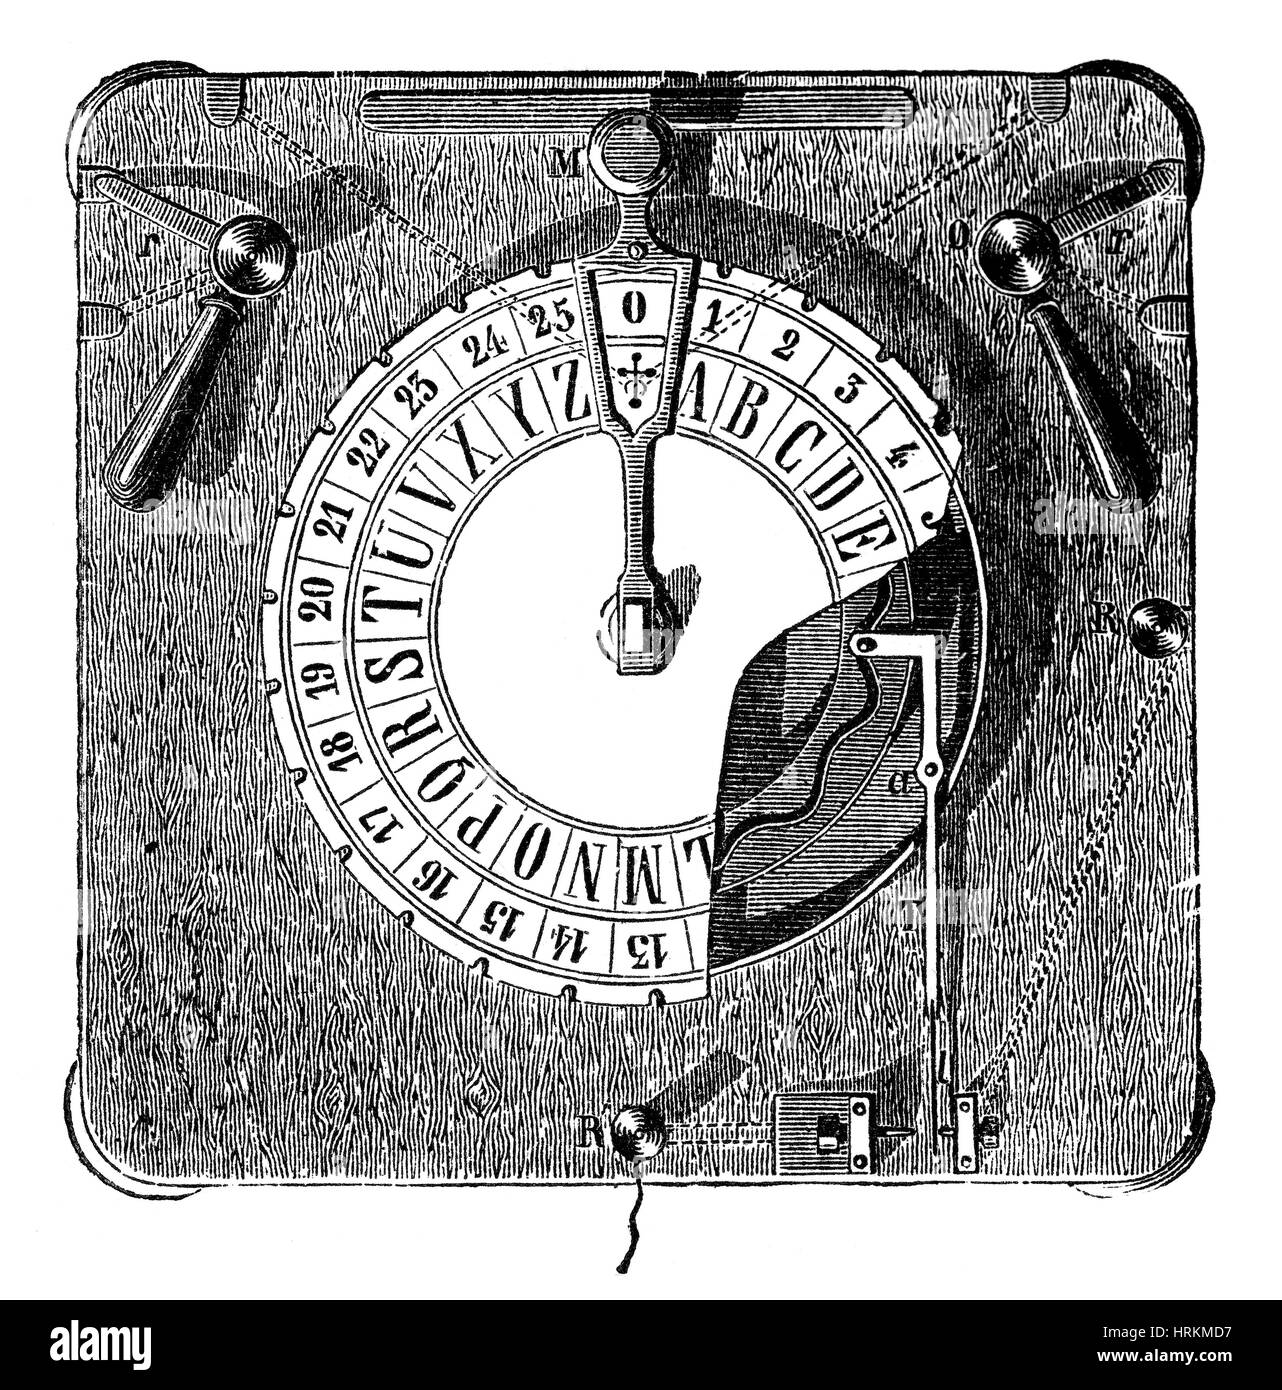 Cooke and Wheatstone Telegraph Dial, 1830s - Stock Image